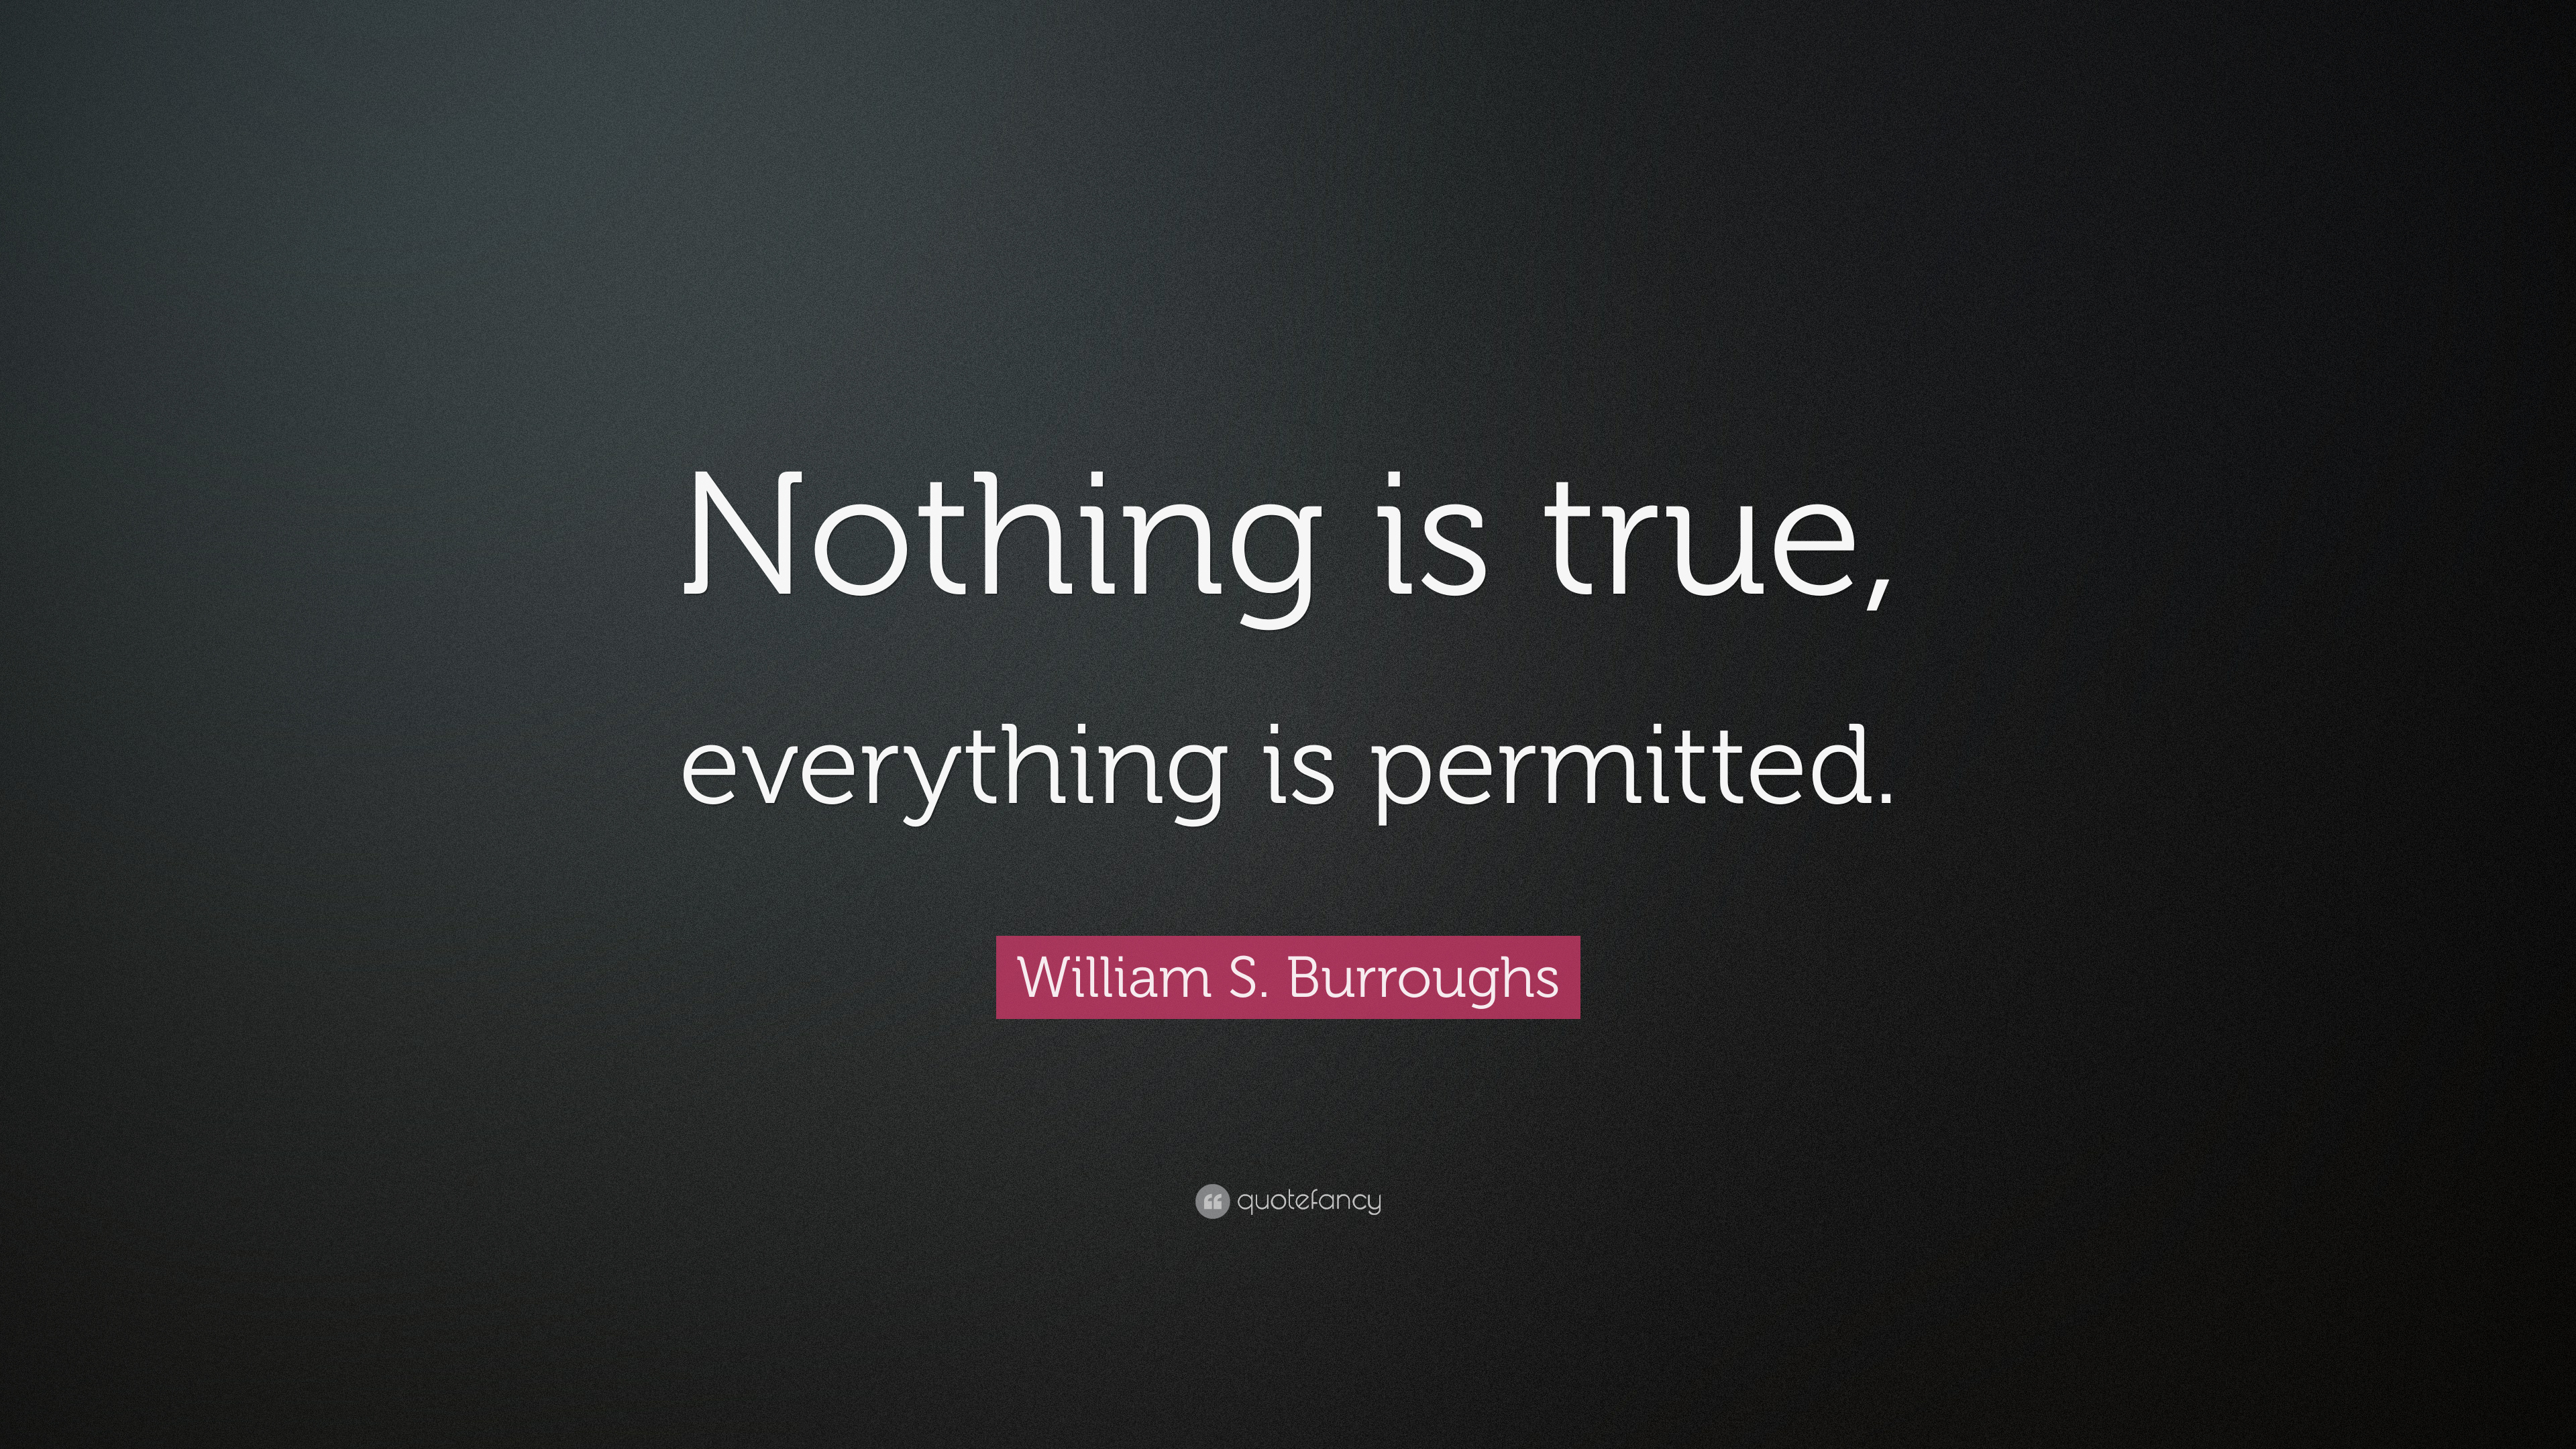 Sadness Wallpaper With Quotes William S Burroughs Quote Nothing Is True Everything